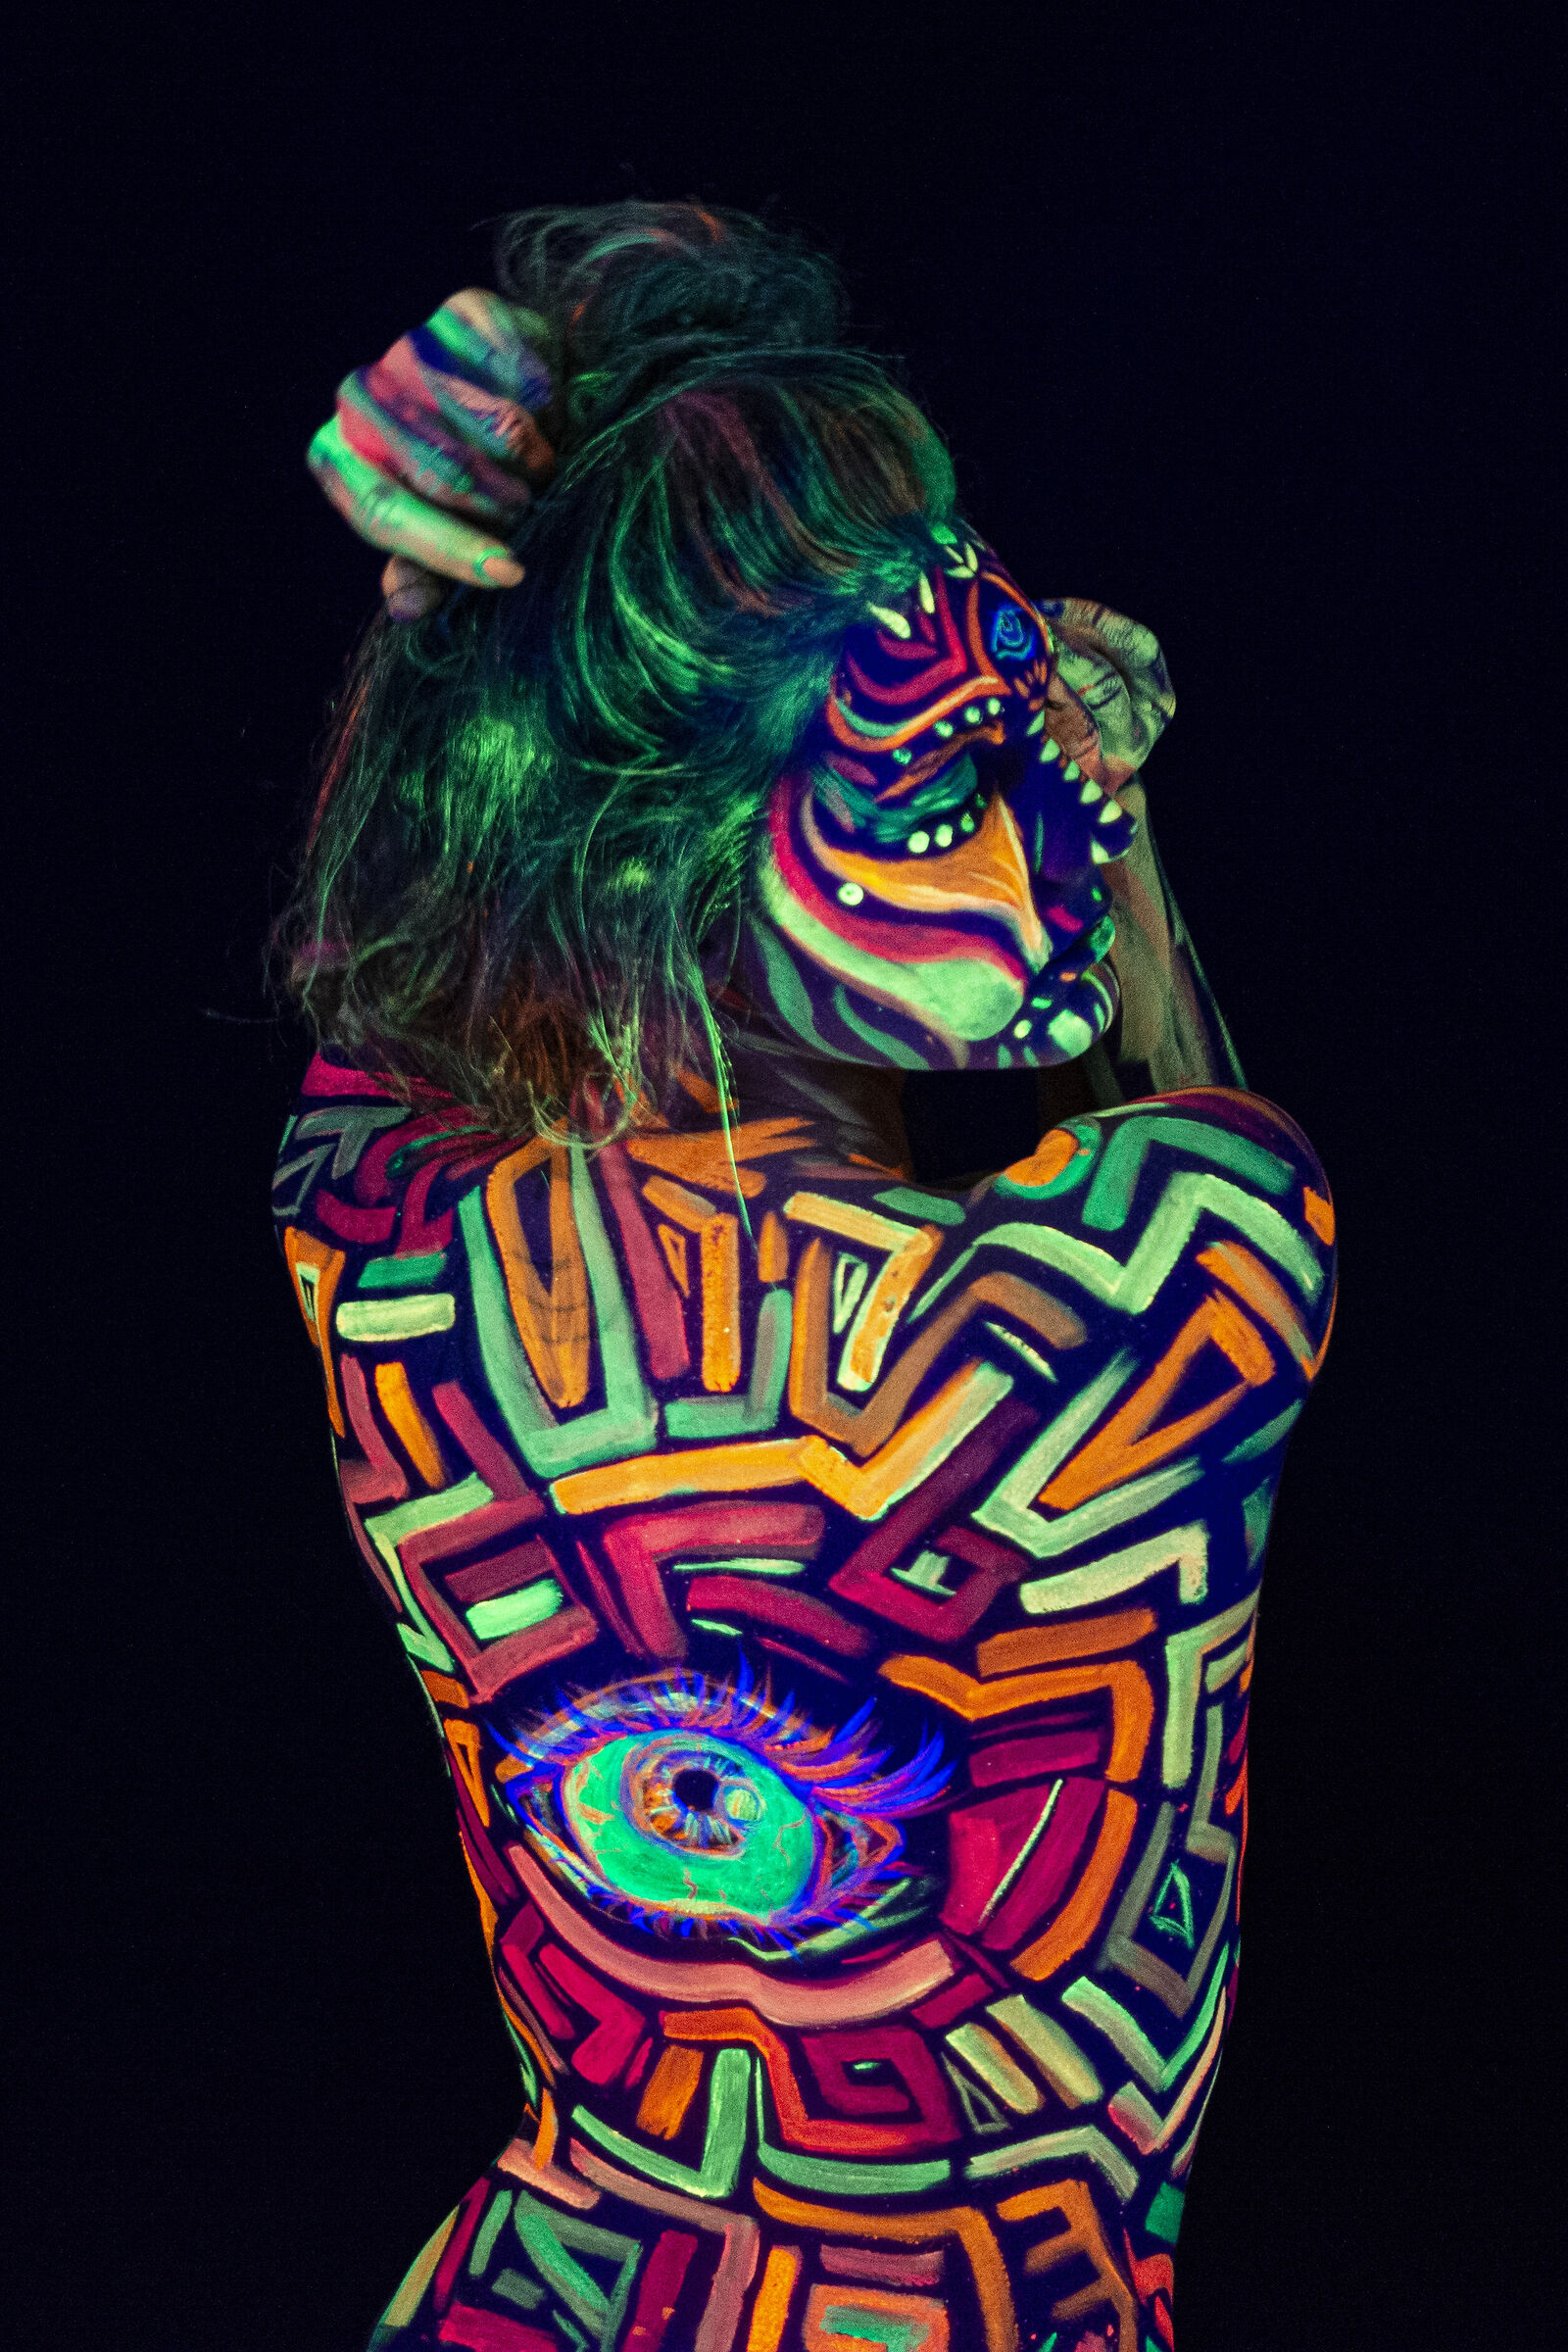 Body painting fluo_7...